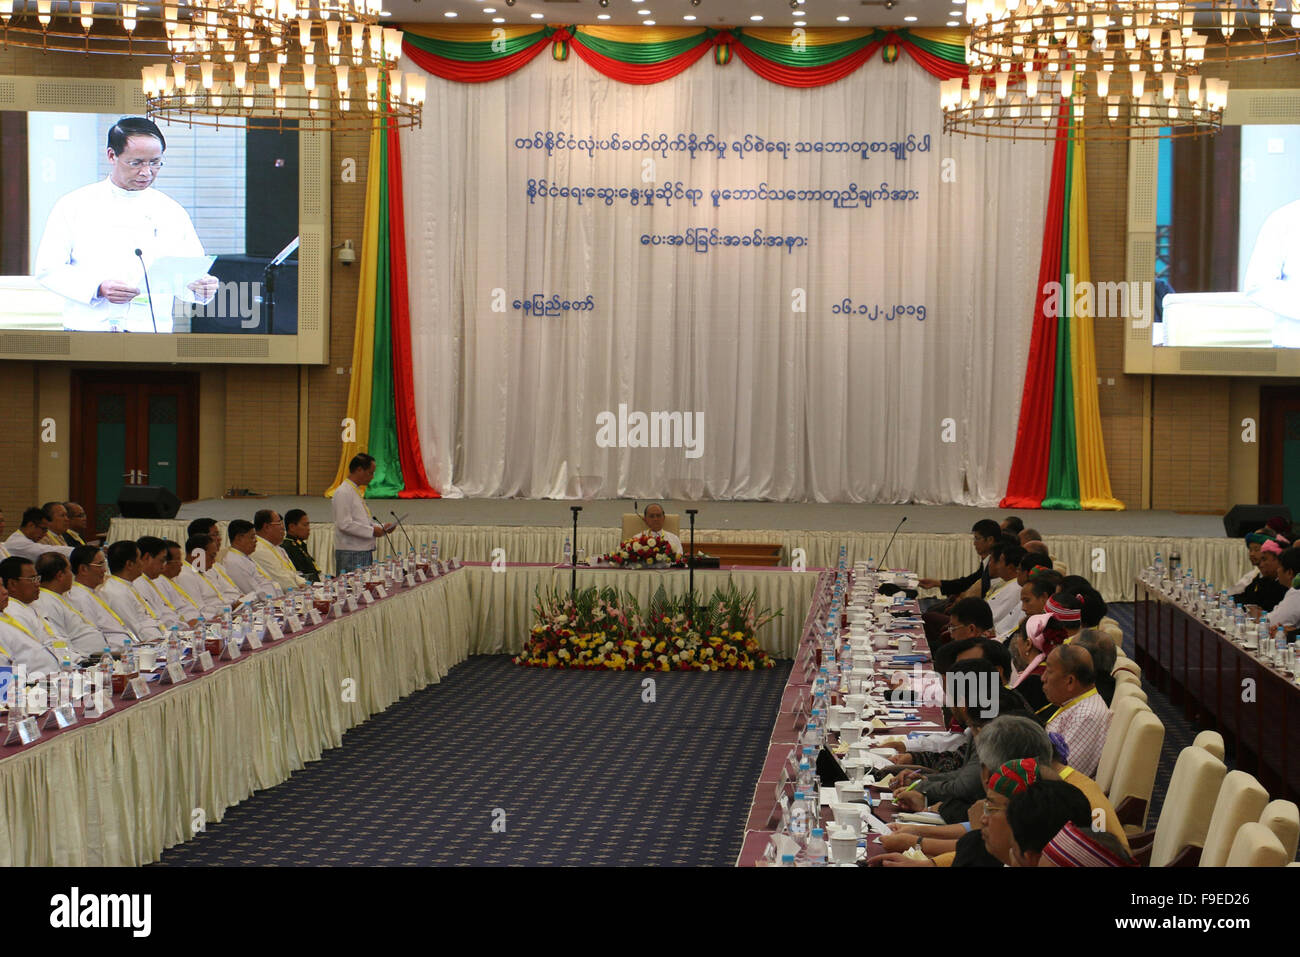 Nay Pyi Taw. 16th Dec, 2015. Photo taken on Dec. 16, 2015 shows a scene of the submitting ceremony of the finalized - Stock Image